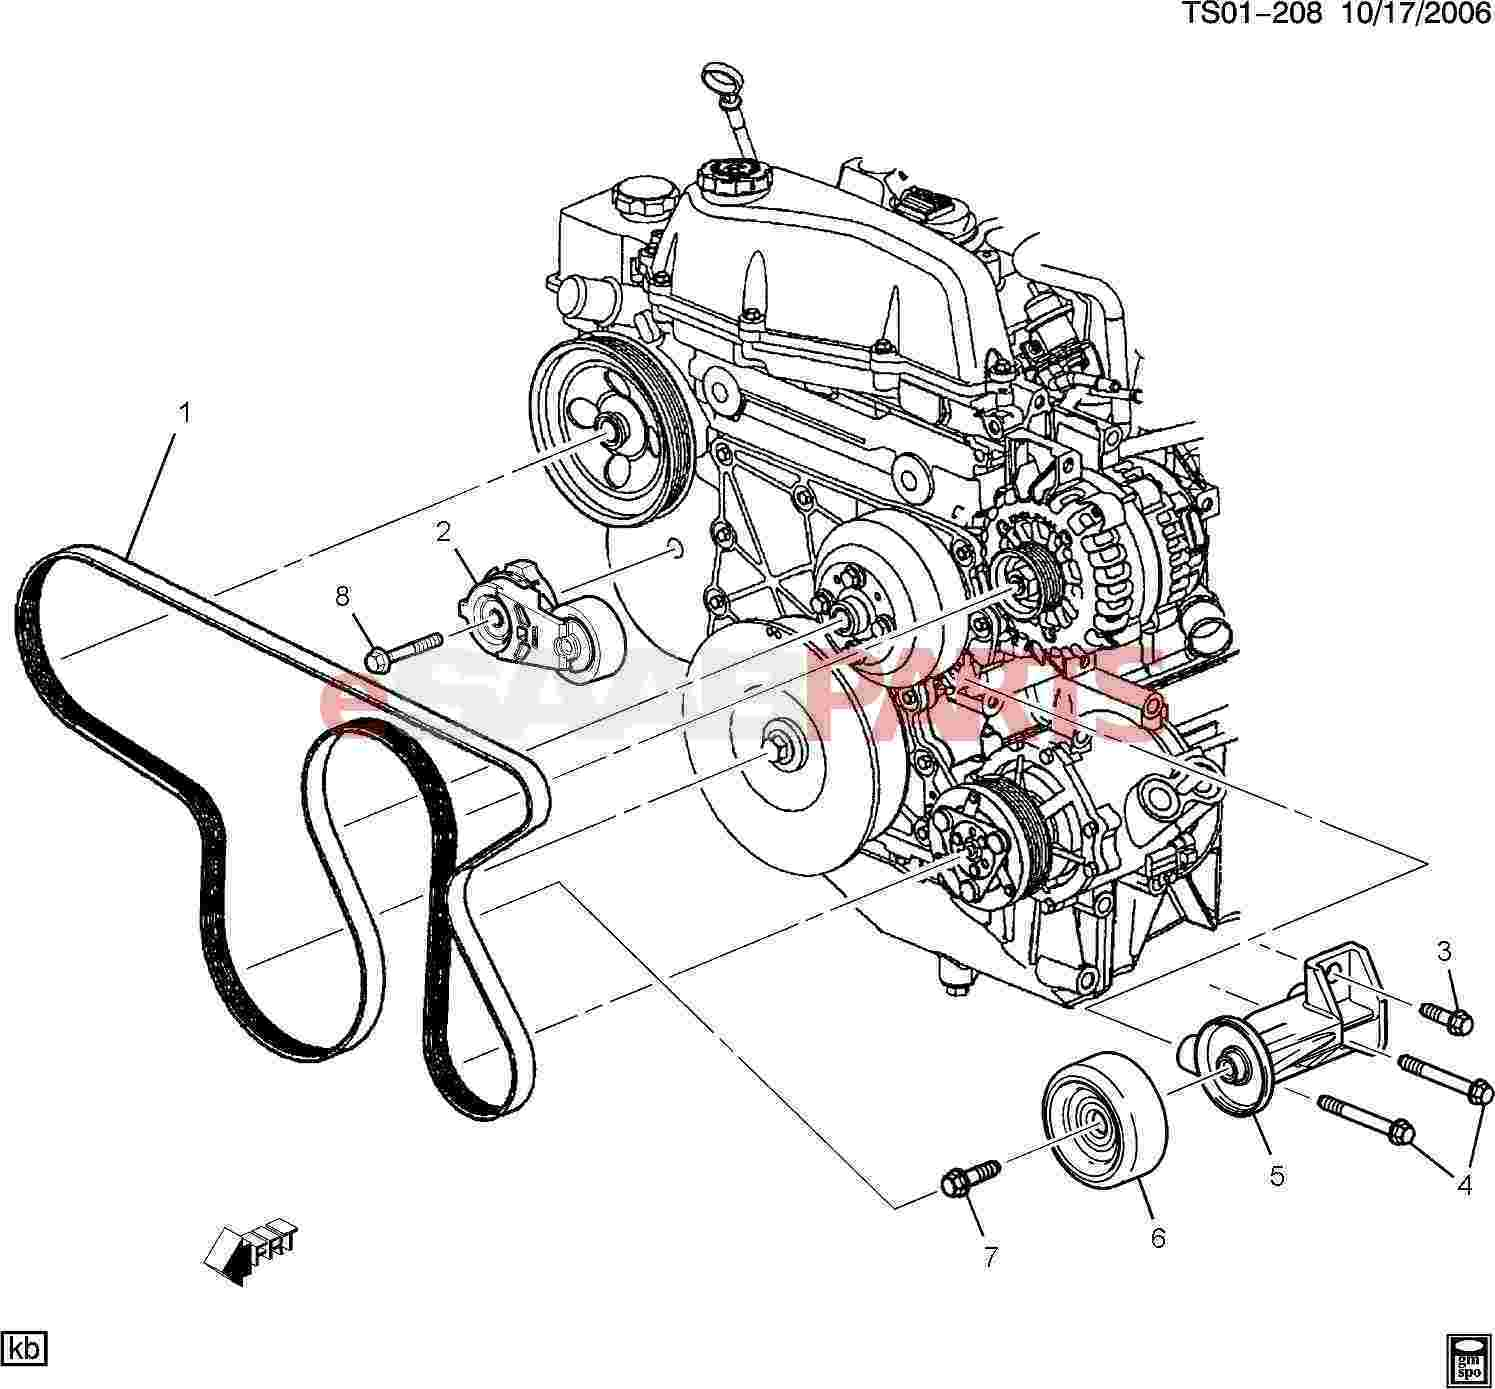 hight resolution of 2002 chevrolet silverado 2500 auto parts diagrams wiring diagram 2002 chevy silverado engine diagram wiring diagram